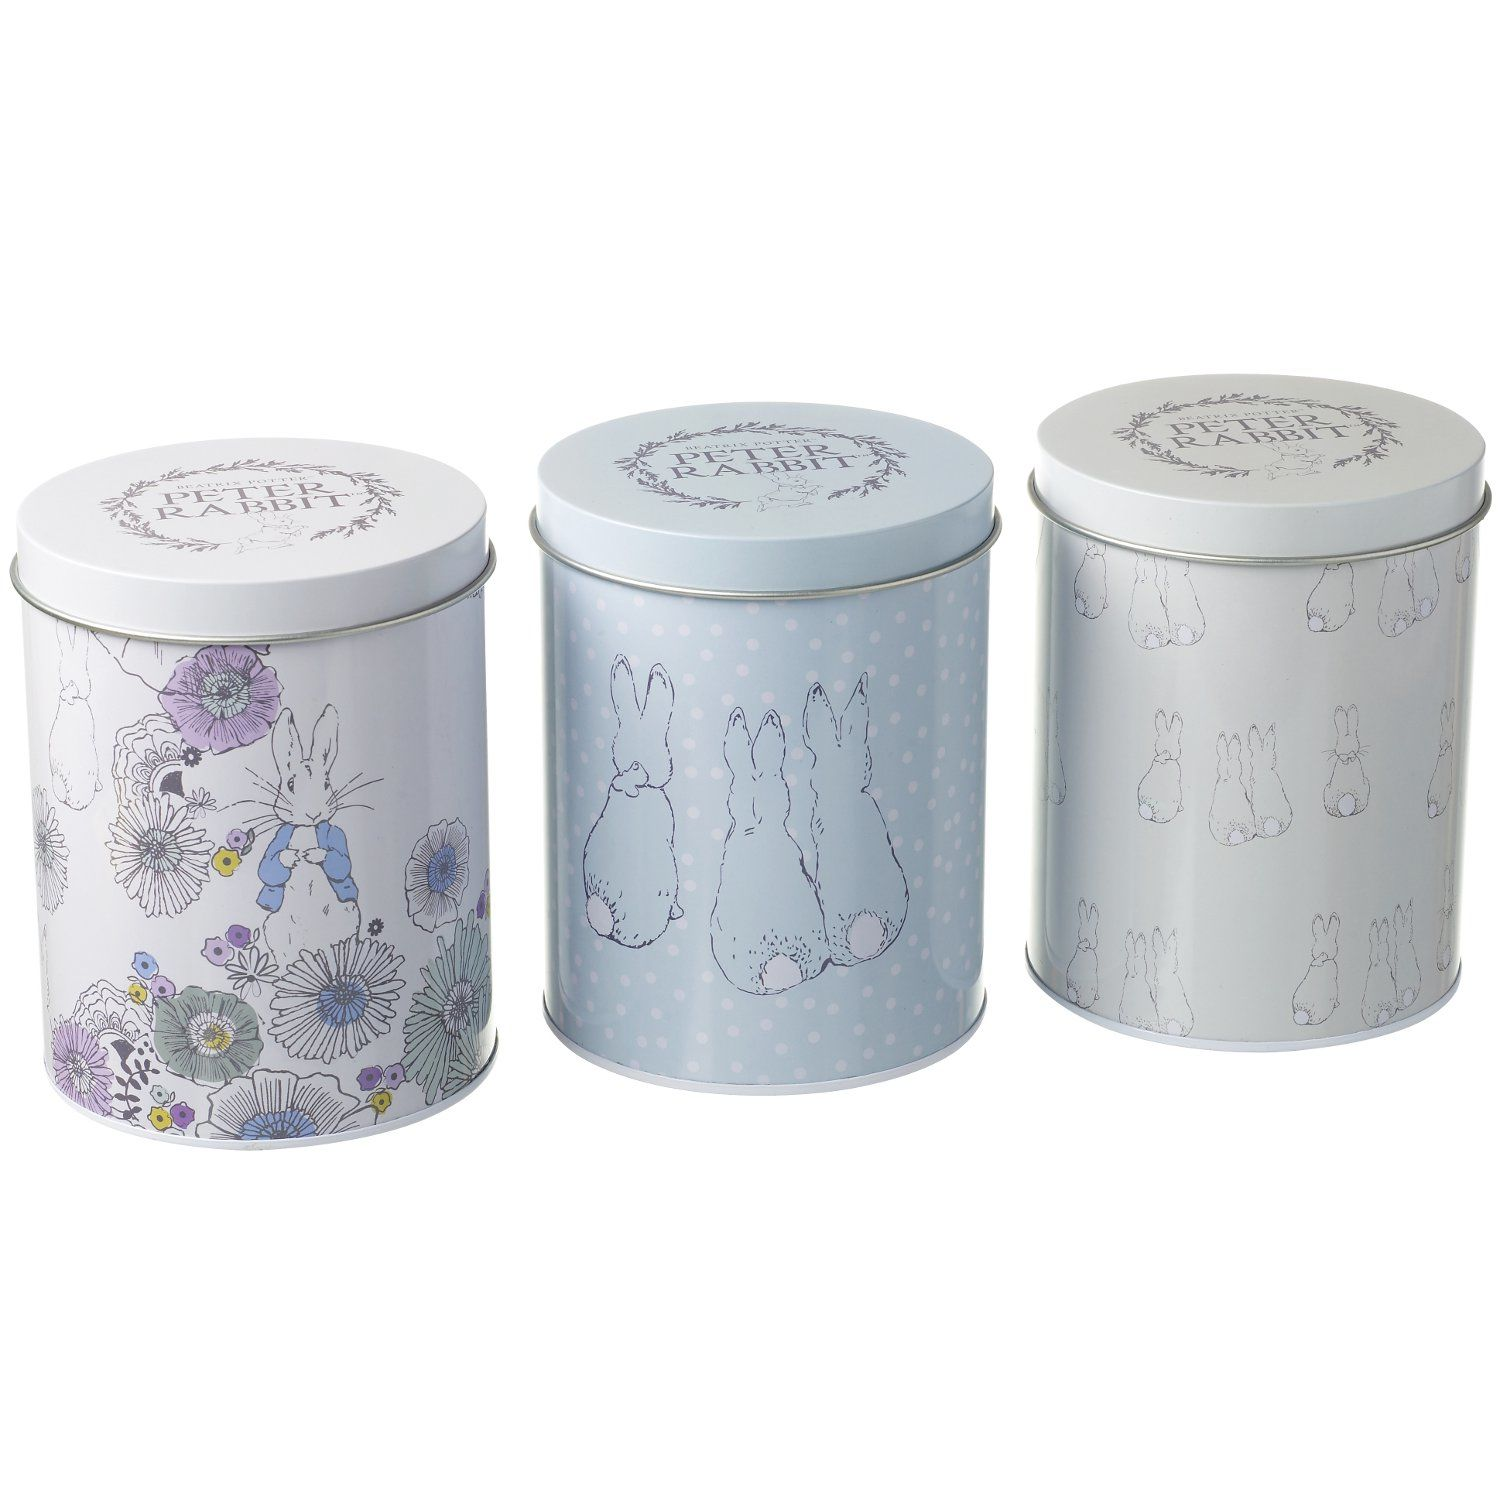 Peter Rabbit Peter Rabbit Contemporary Storage Tins (Set of 3)